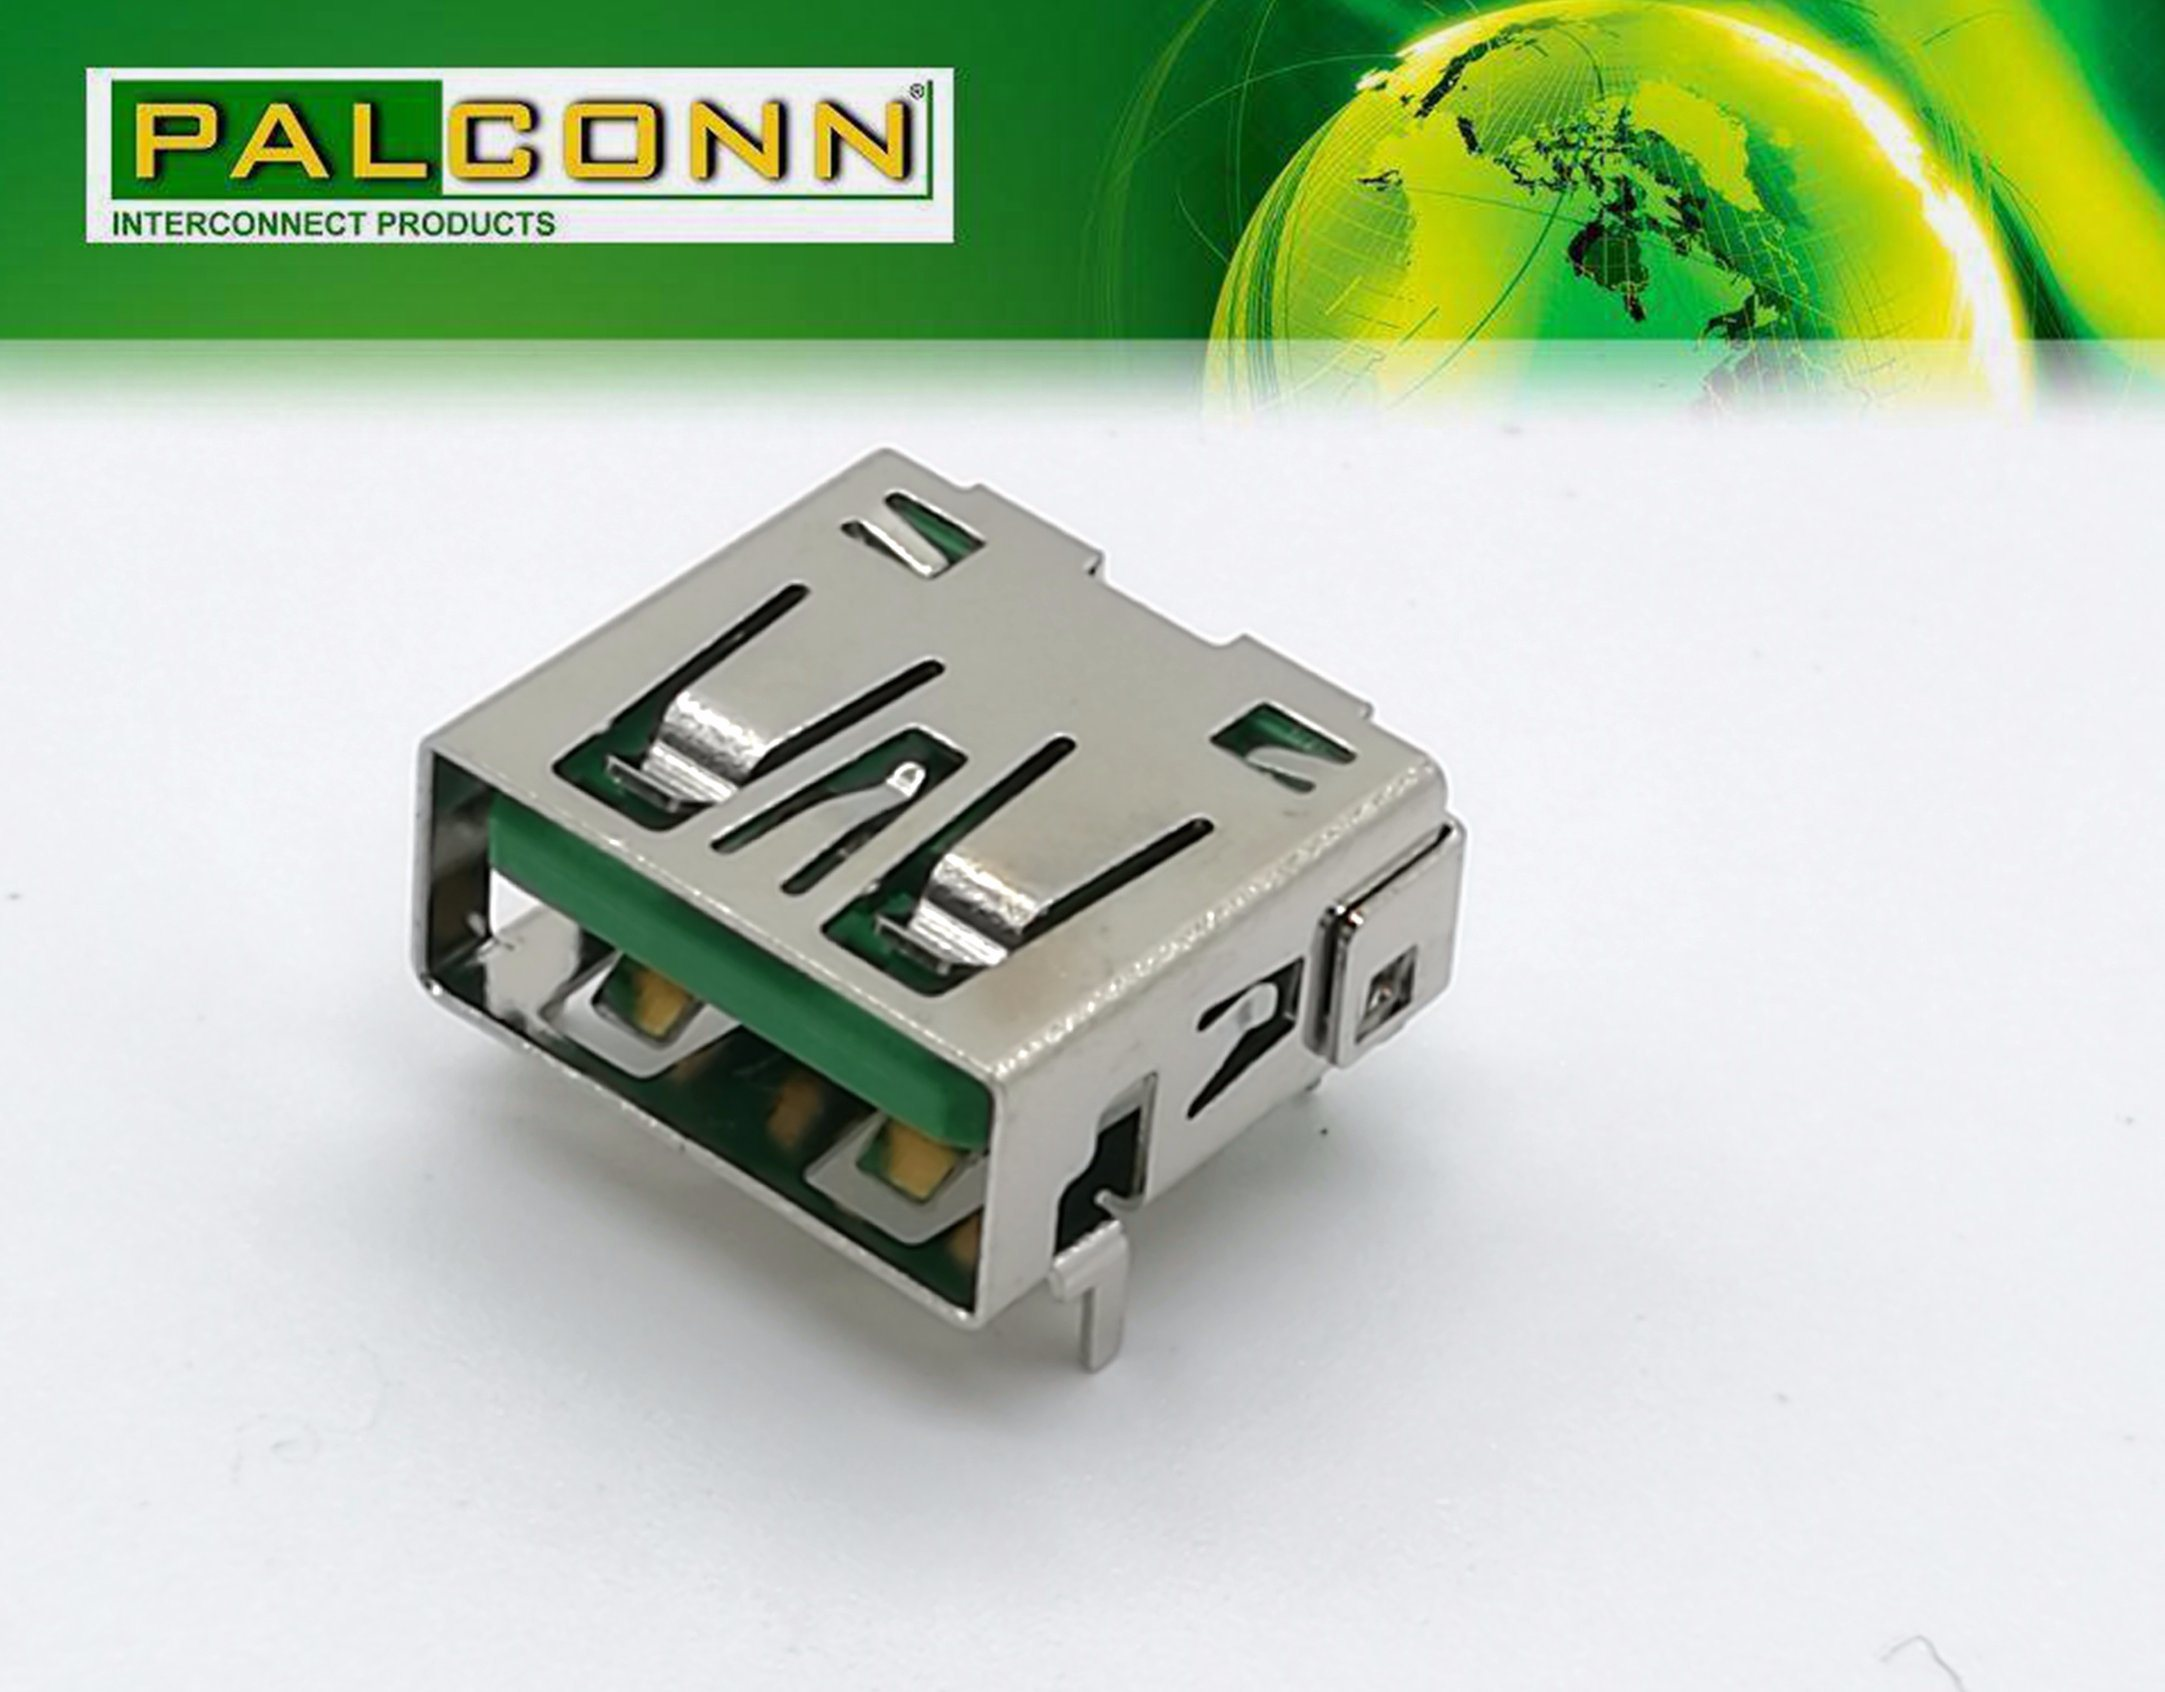 USB3.0 Connector for High Speed Data Transmission, Large Current~5A